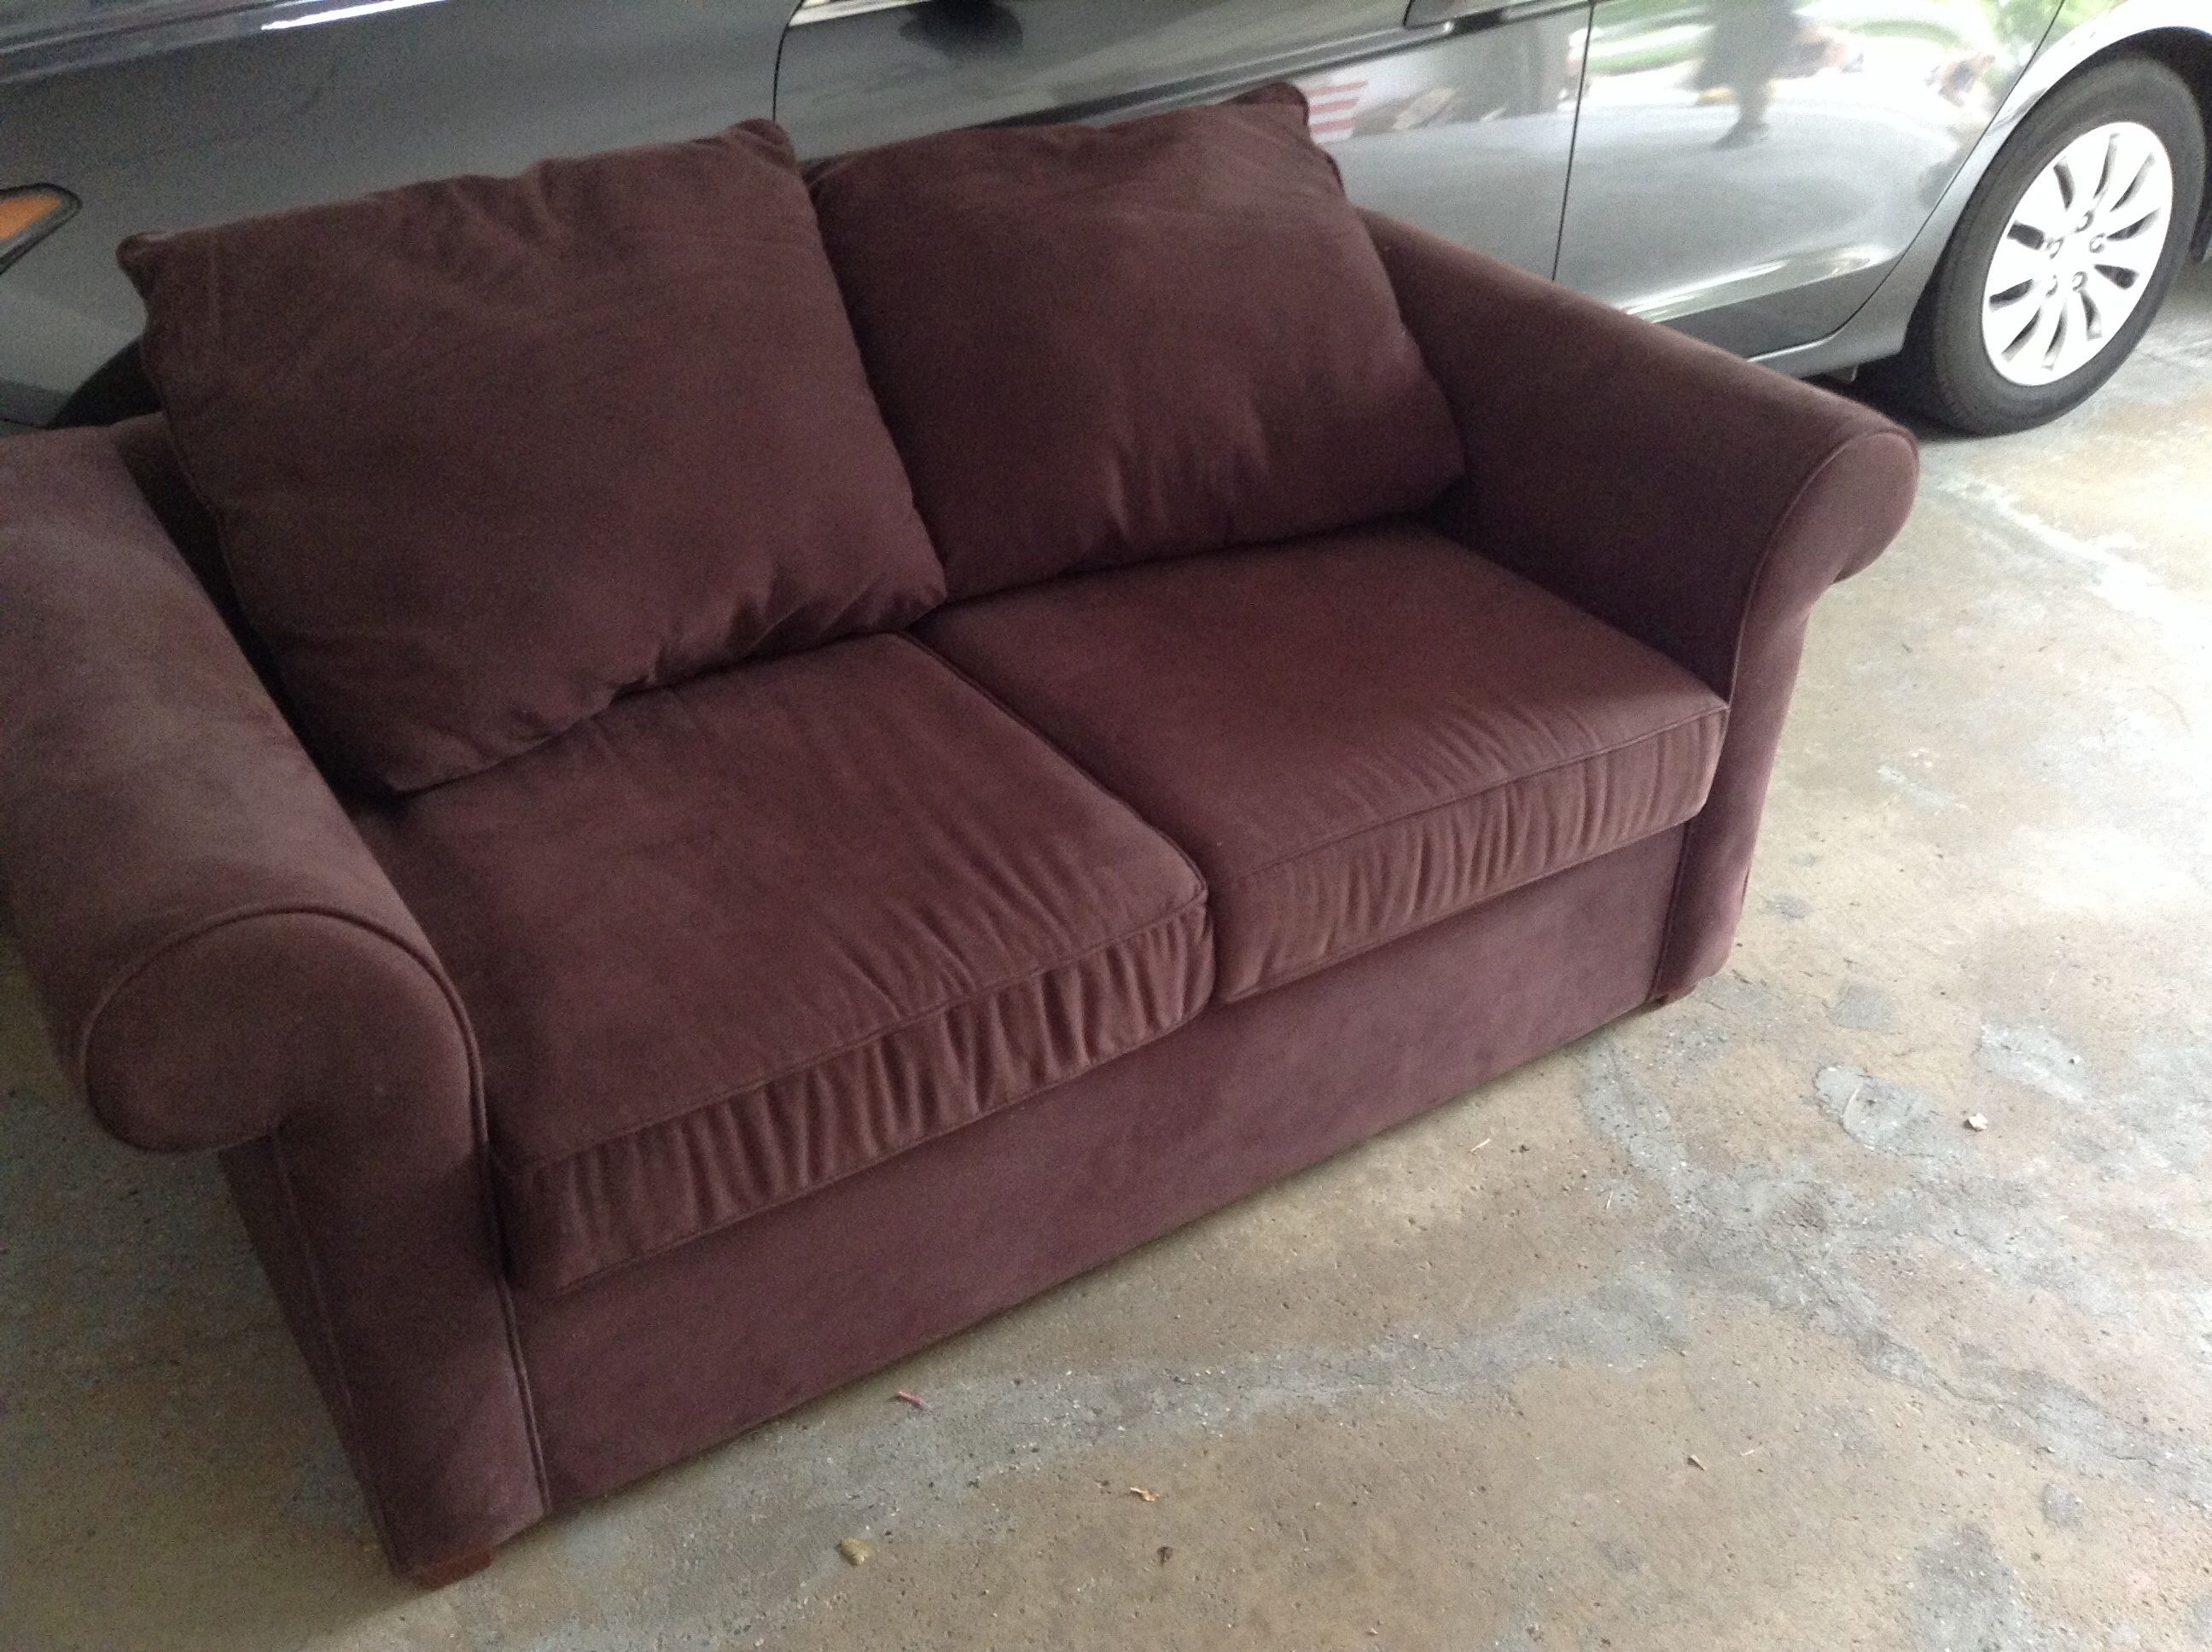 4 brown sofa couch in Grogan s Garage Sale in Eagan MN for 4